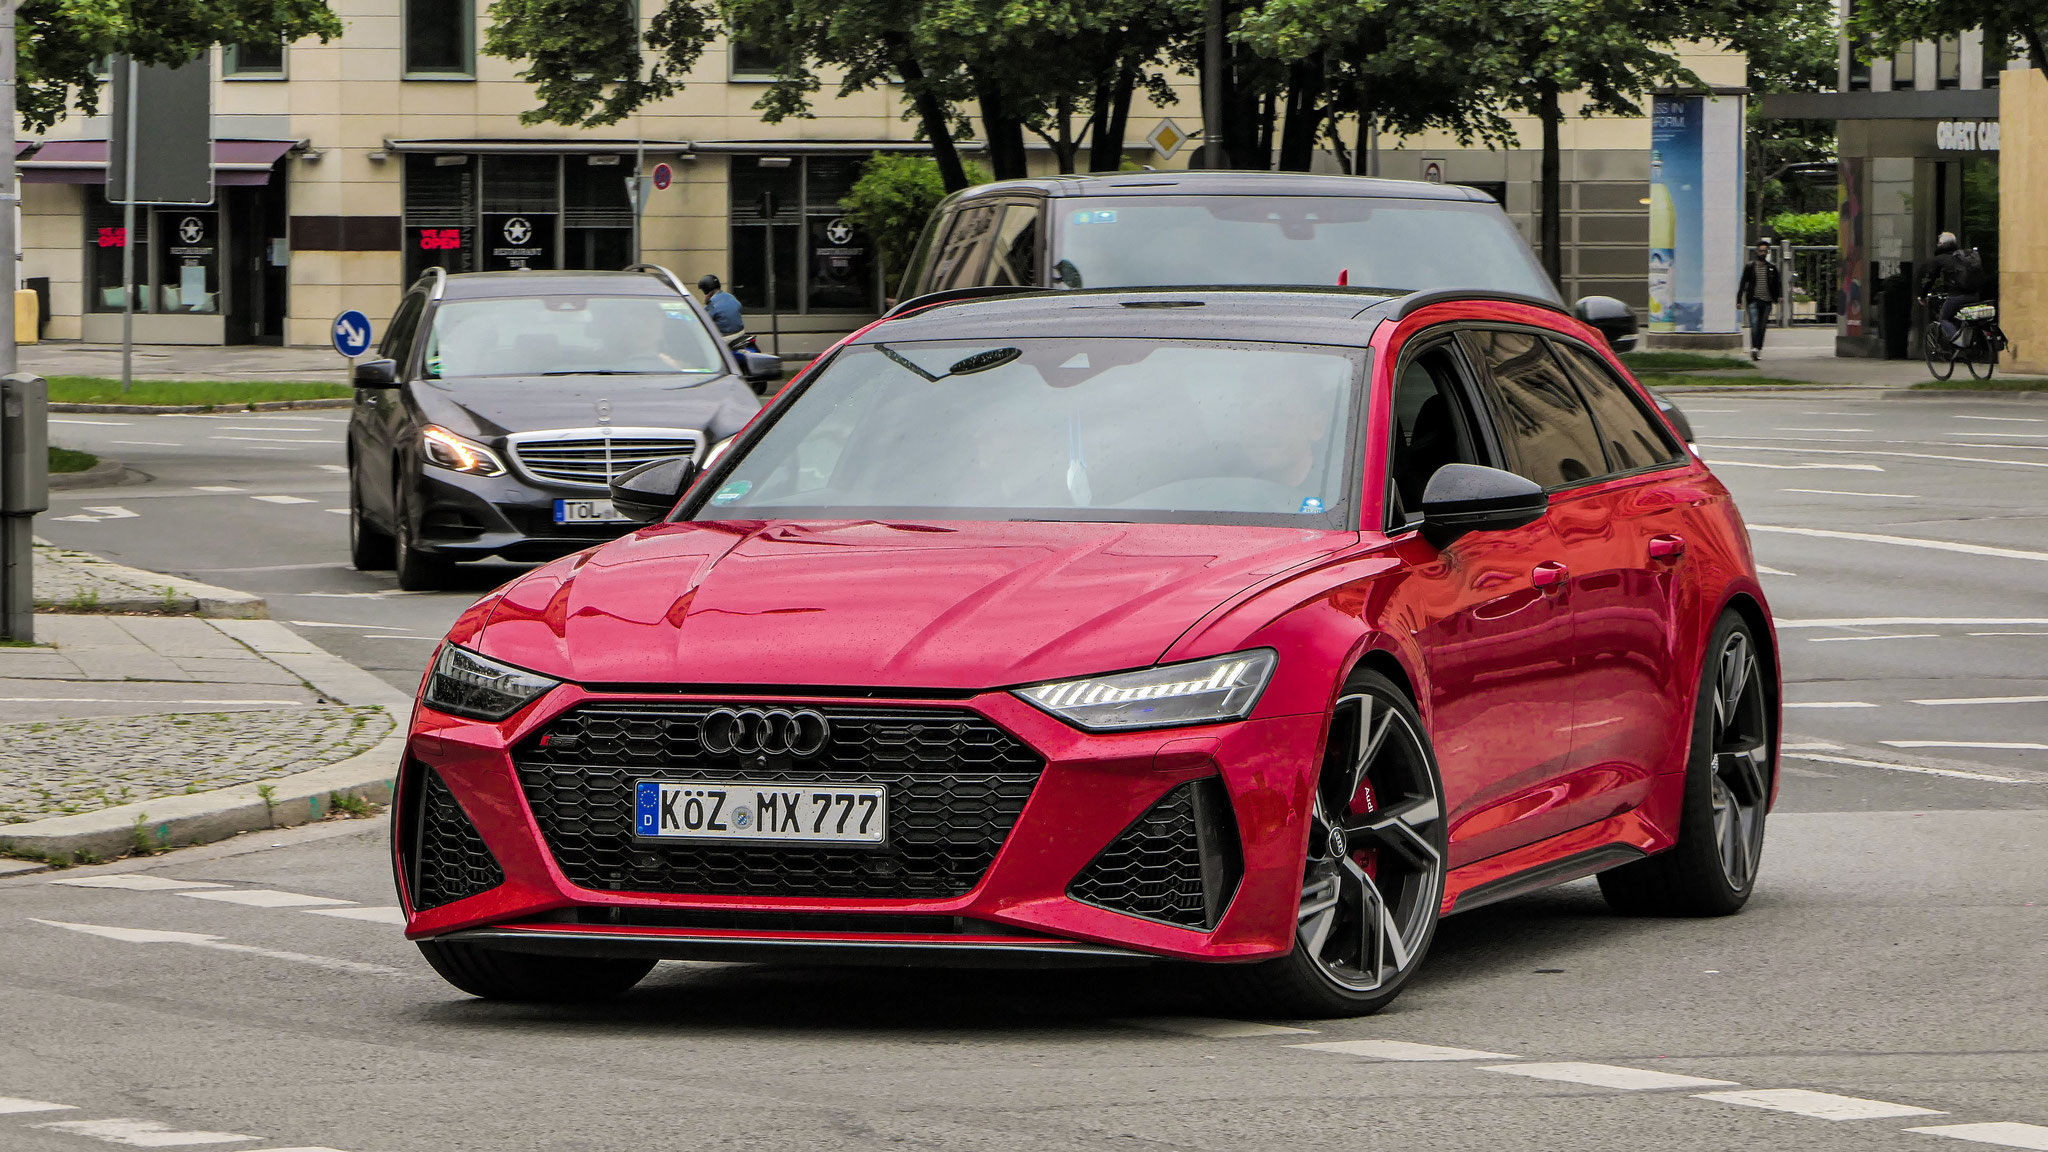 Audi RS6 - KÖZ-MX-777